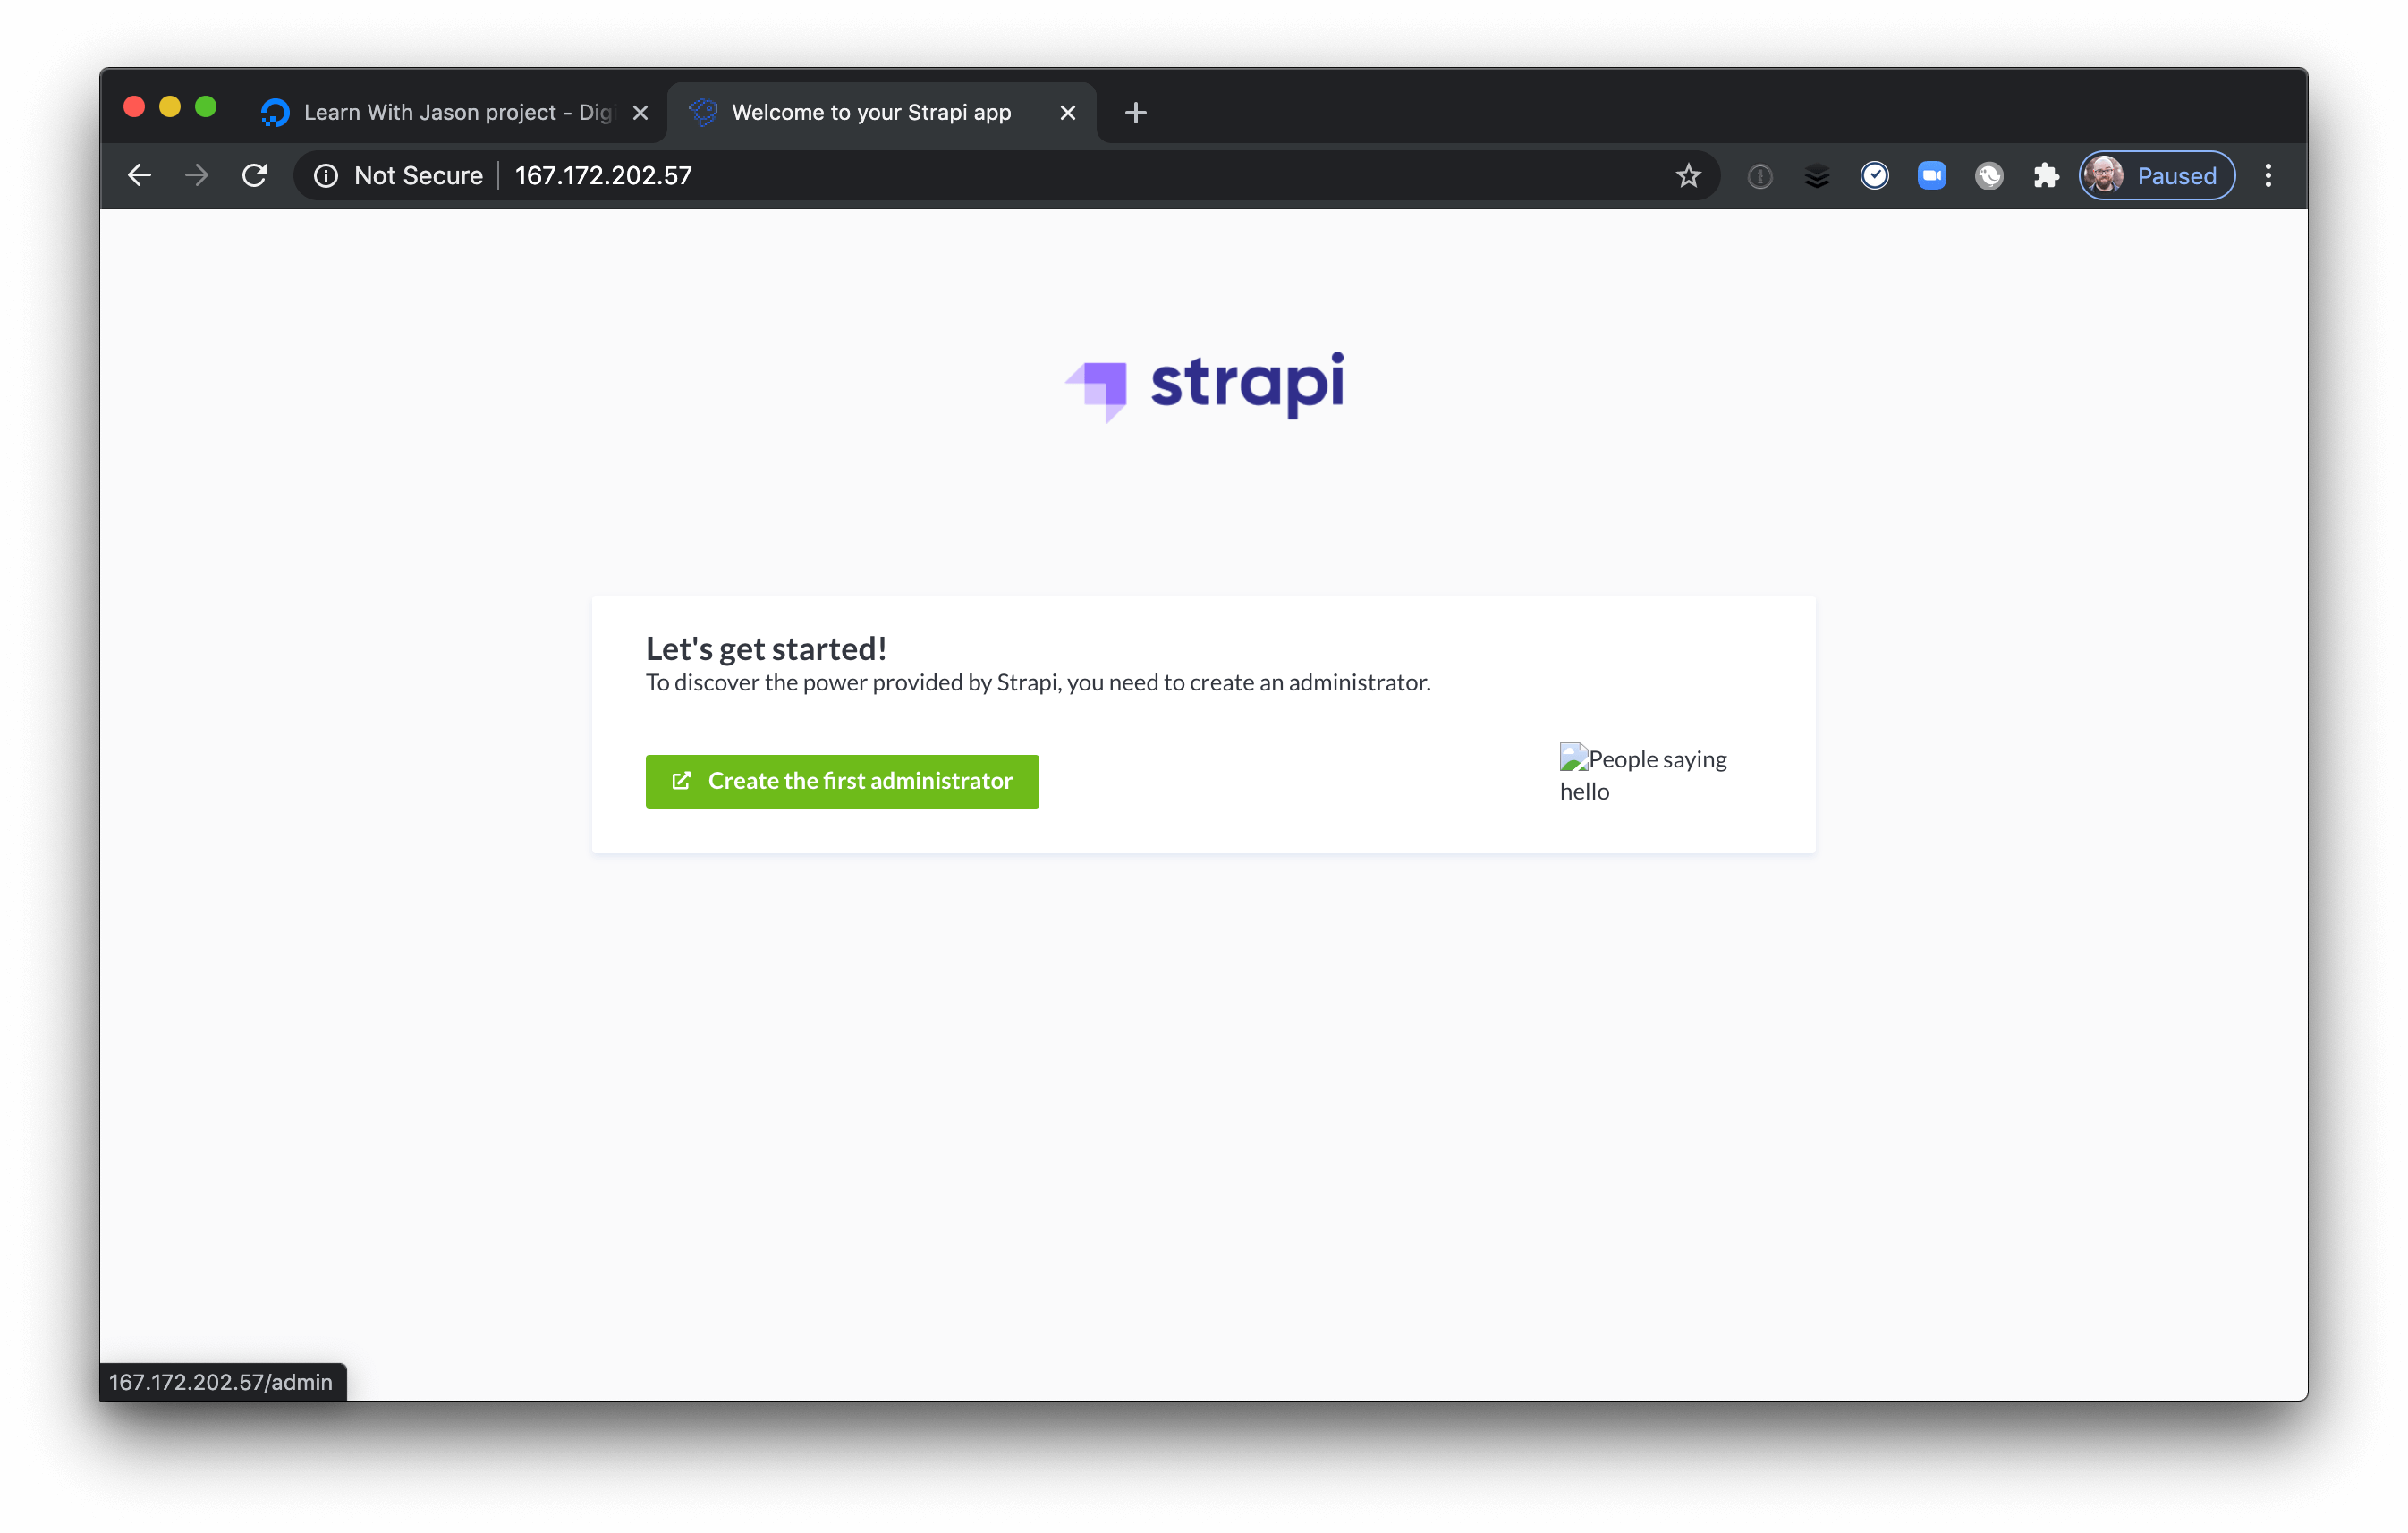 Strapi's getting started page.